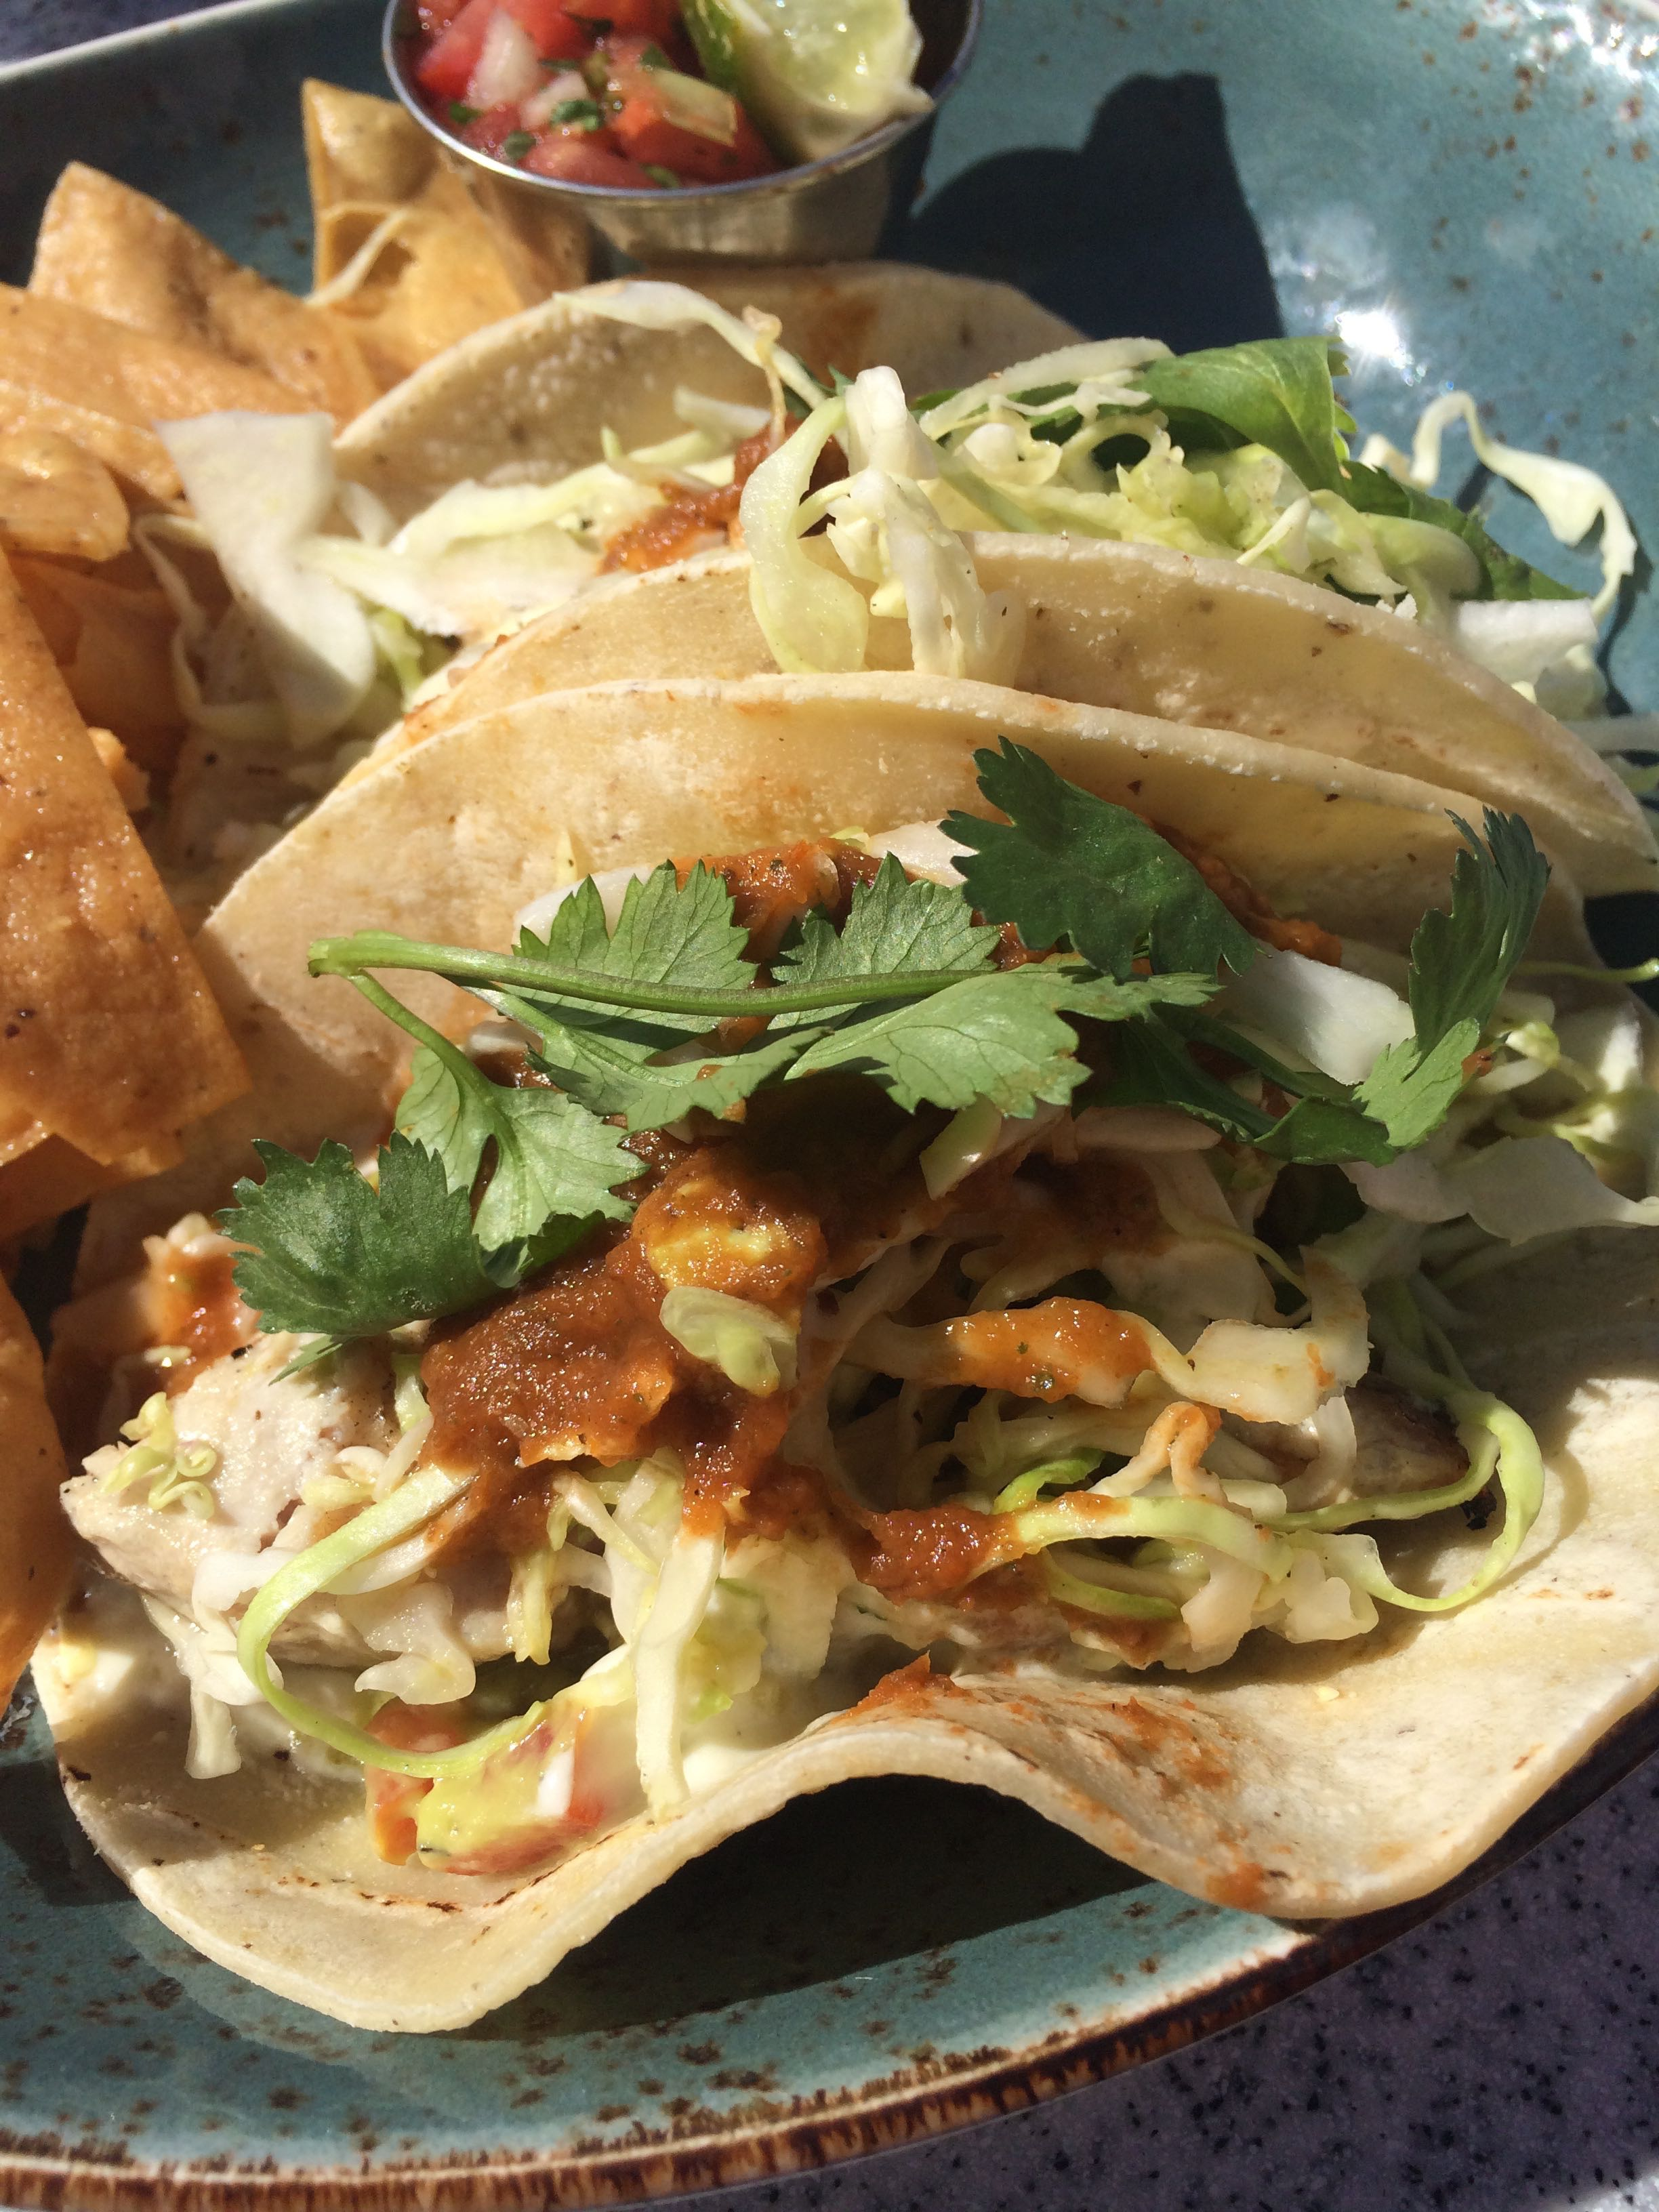 The best fish tacos in san diego helen ochyra for Best fish to use for fish tacos